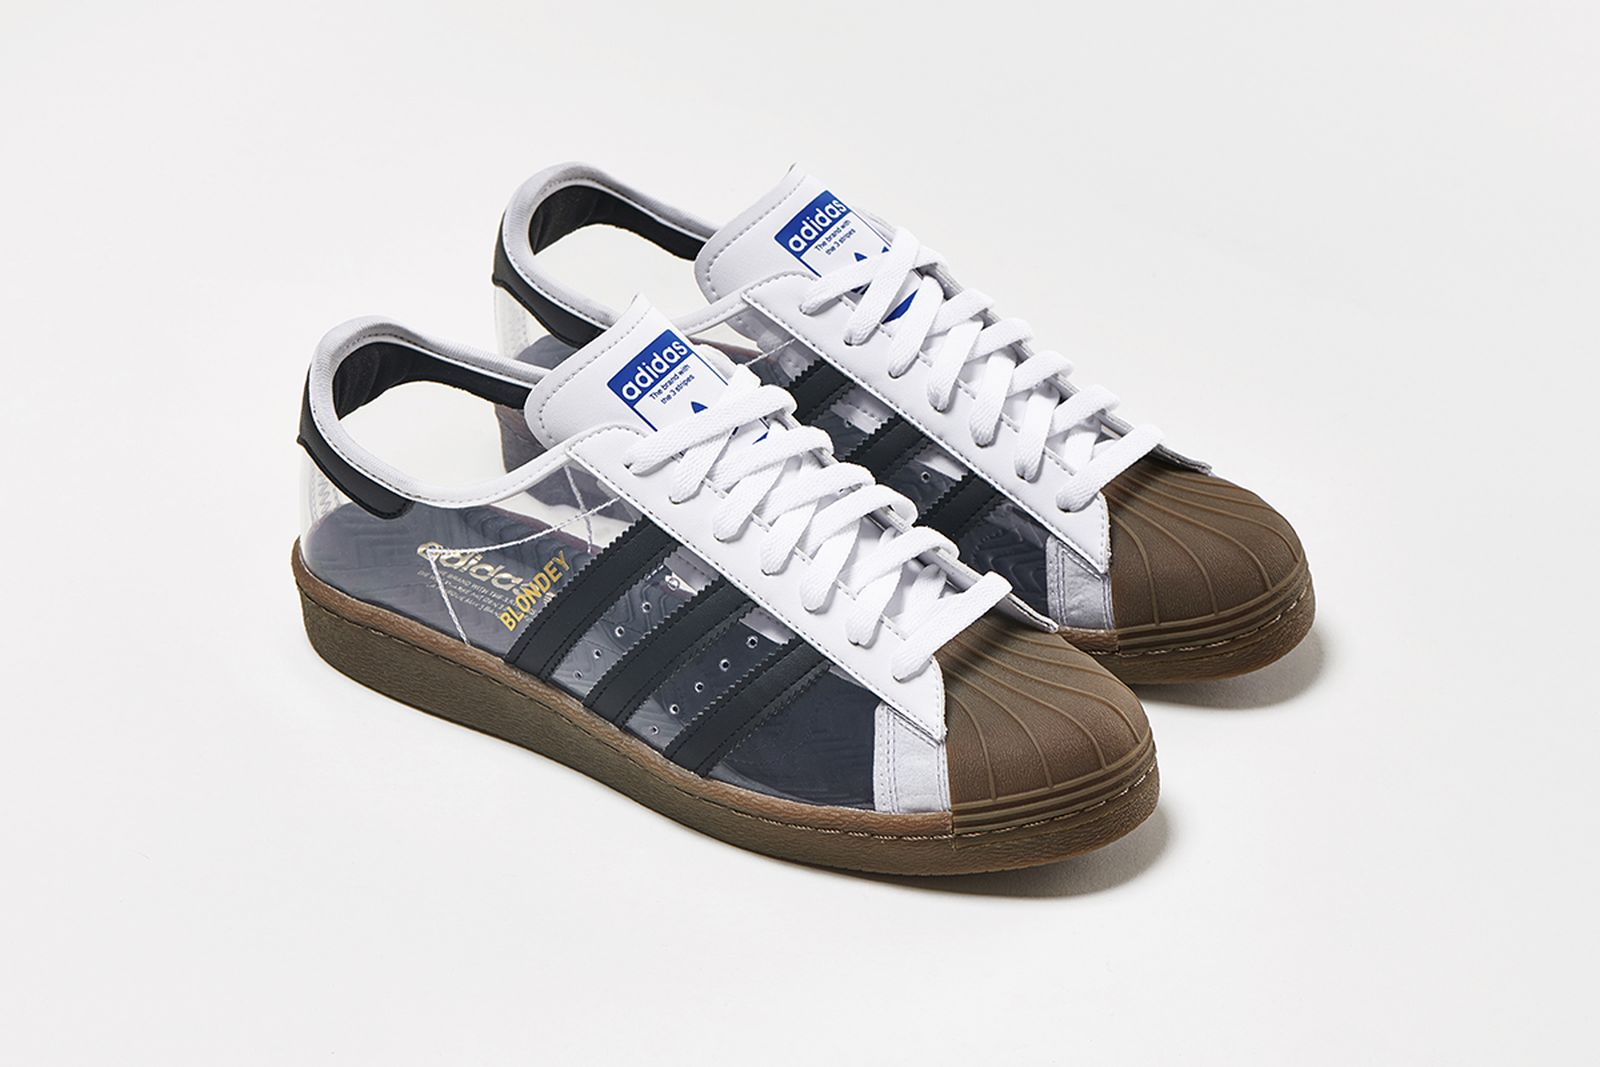 blondey-mccoy-adidas-superstar-80s-clear-release-date-price-1-01